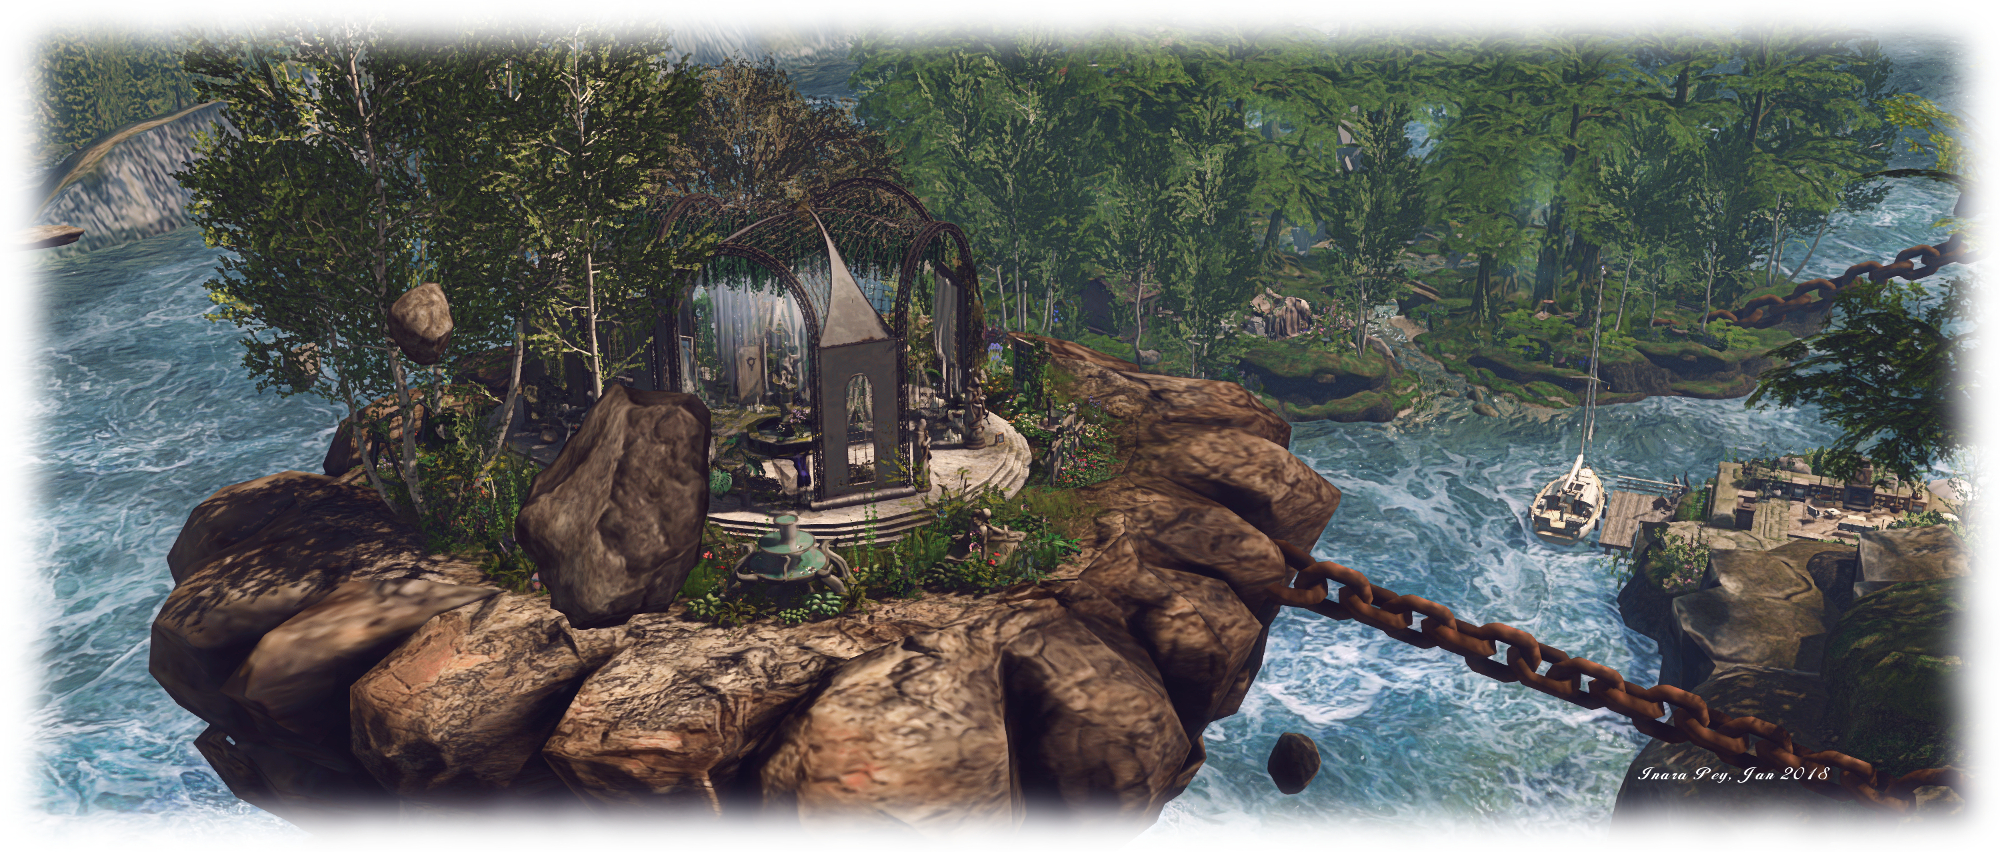 Brand New Colony; Inara Pey, January 2018, on Flickr